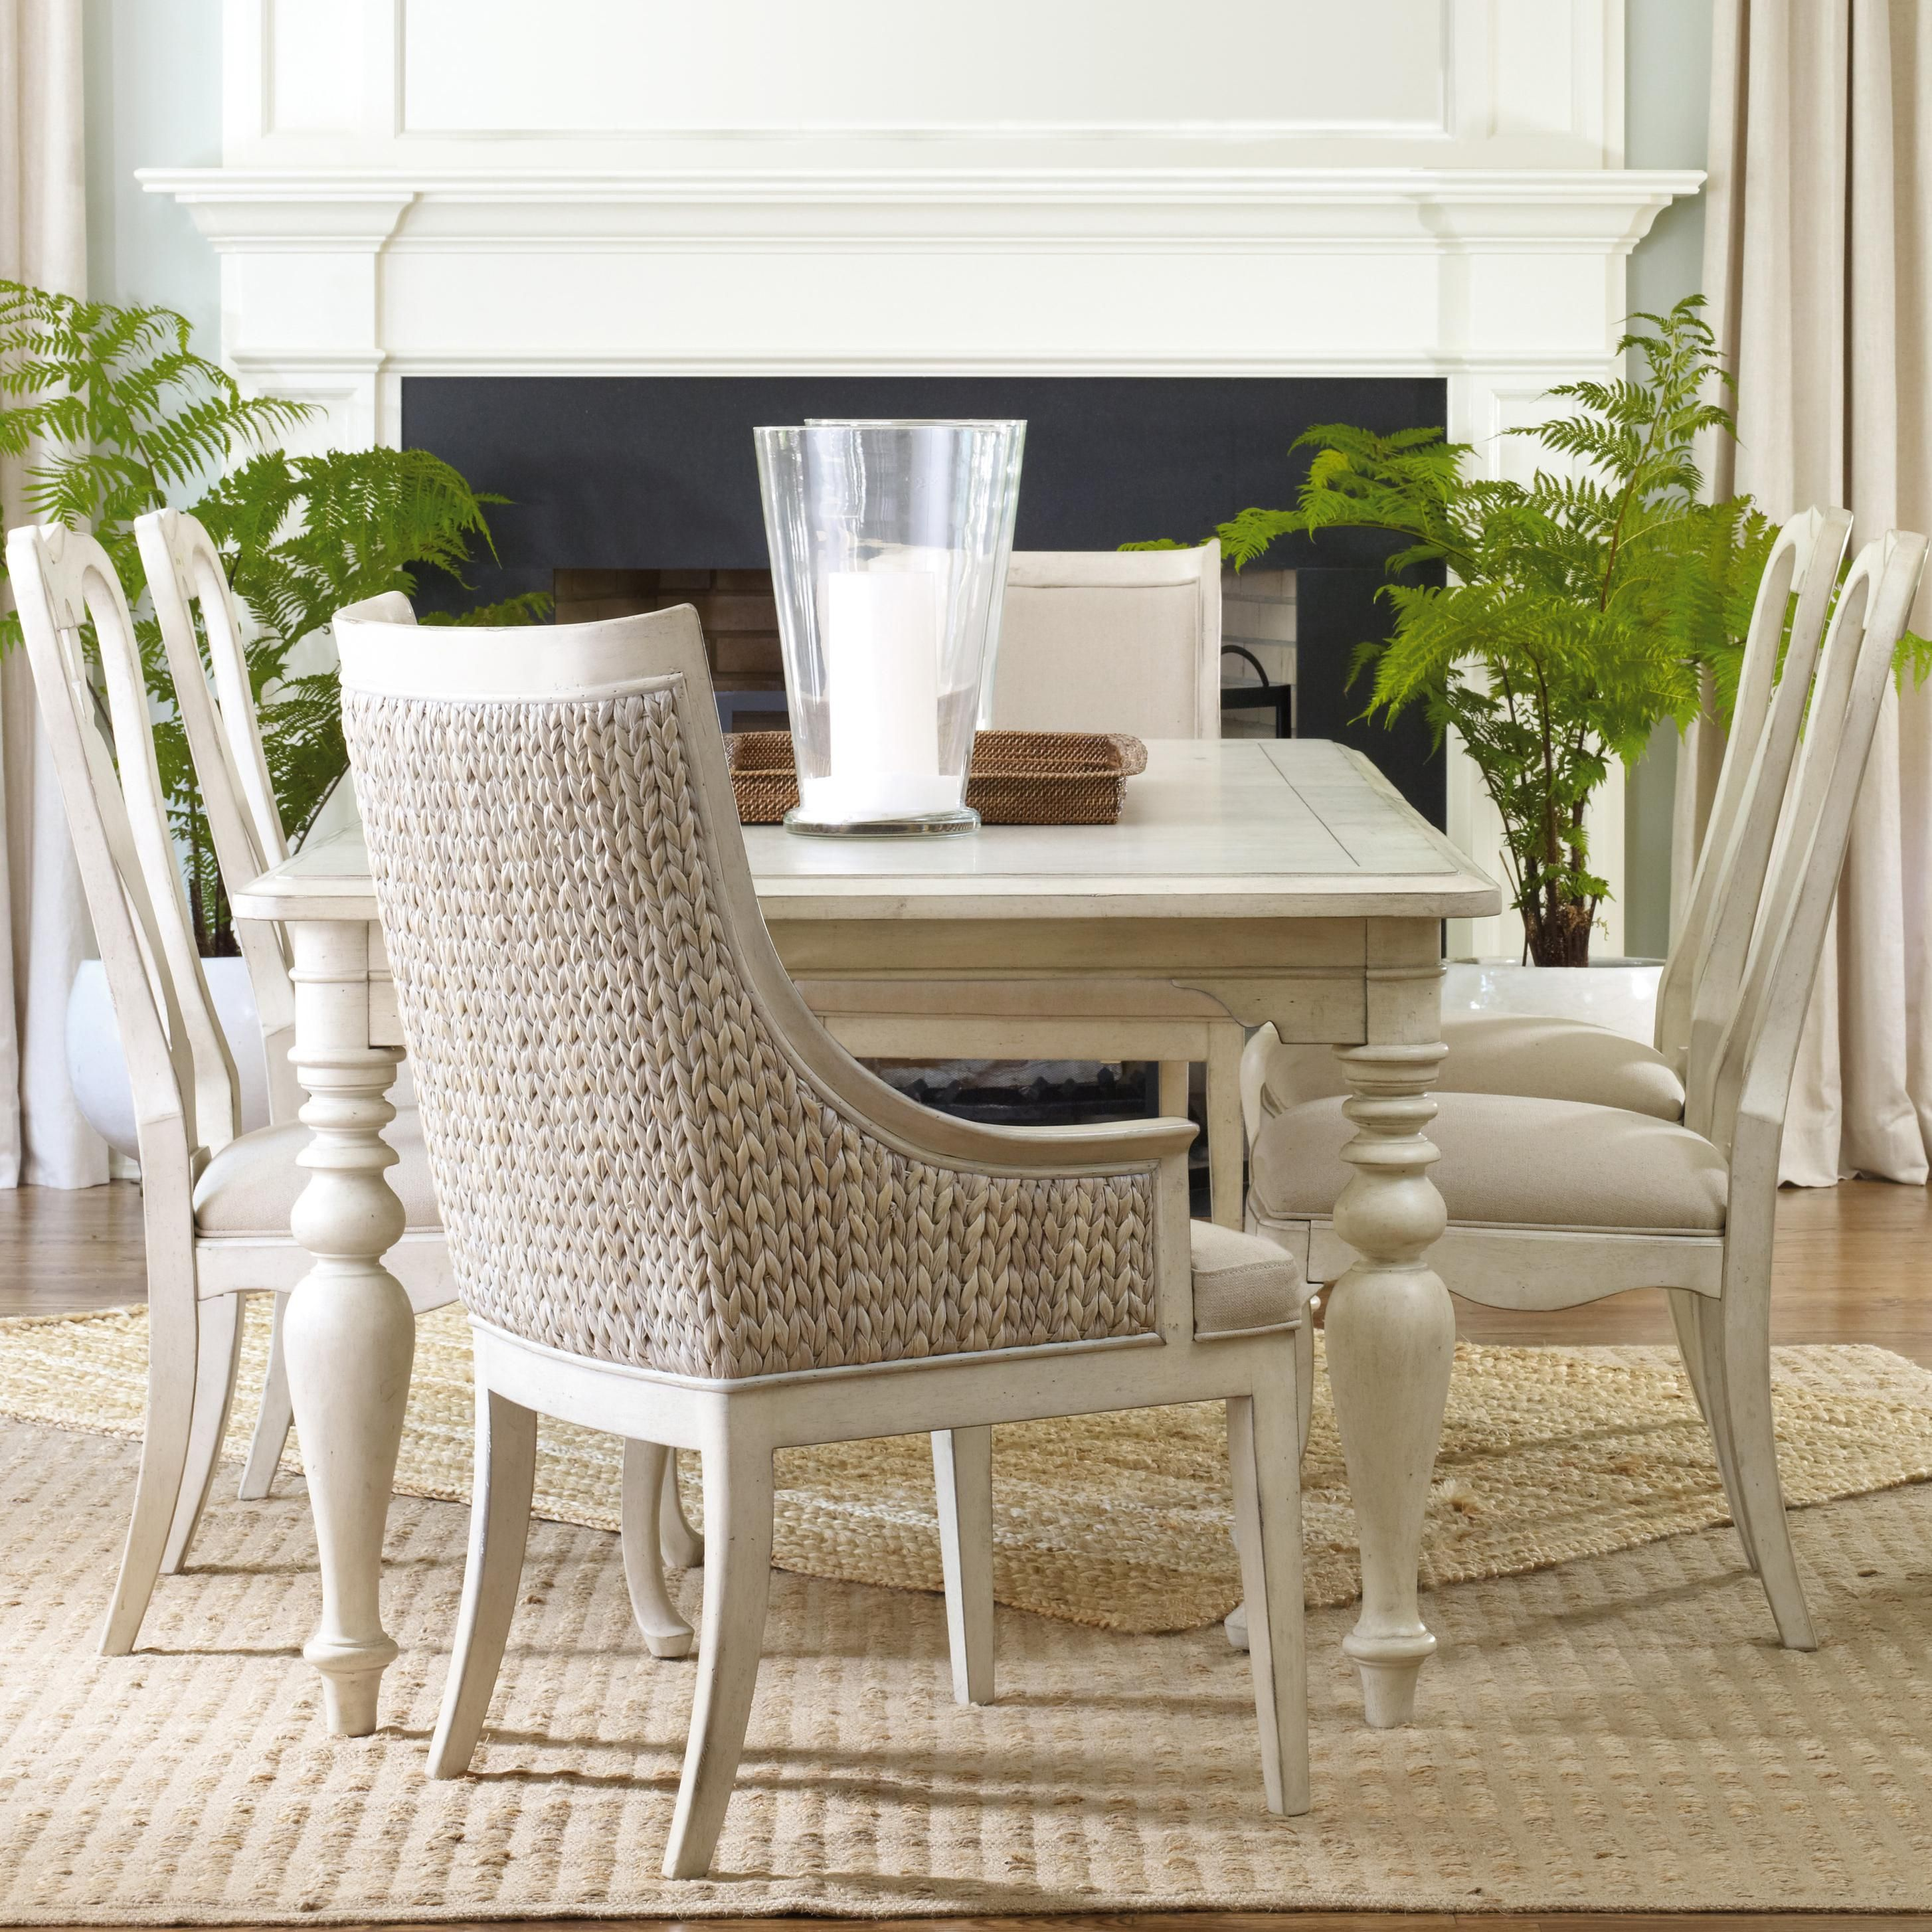 Harbour Pointe Seven Piece Rectangular Turned Leg Table With Woven Back  Host Chairs Queen Anne Side Chairs Set By Hooker Furniture   Barrow Fine  Furniture ...